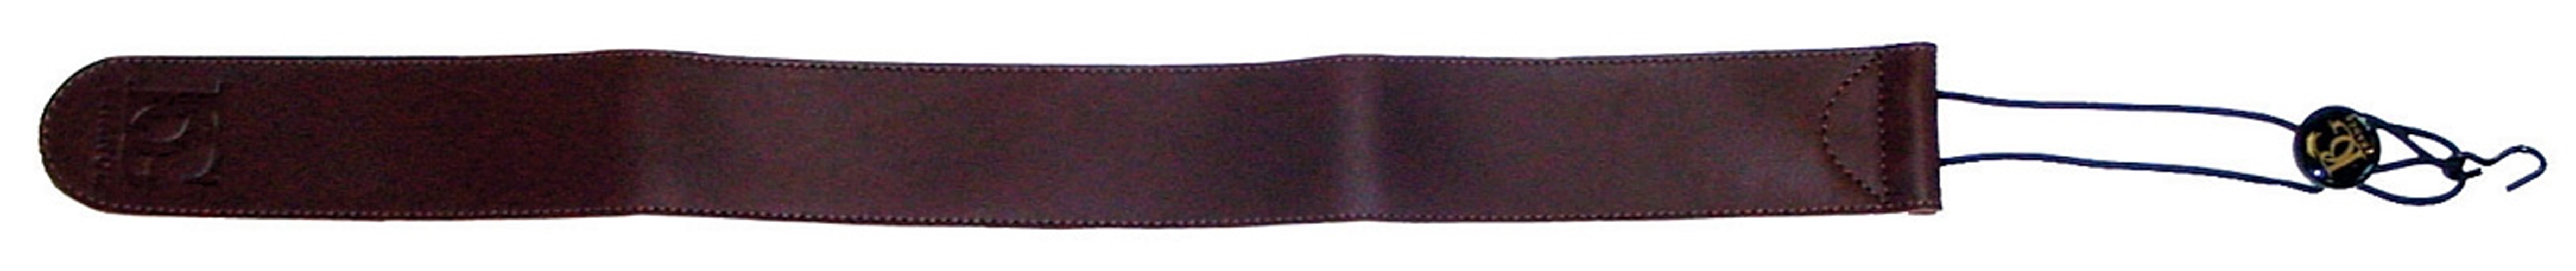 BG Bassoon Seat Strap  - Leather - Hook - Brown